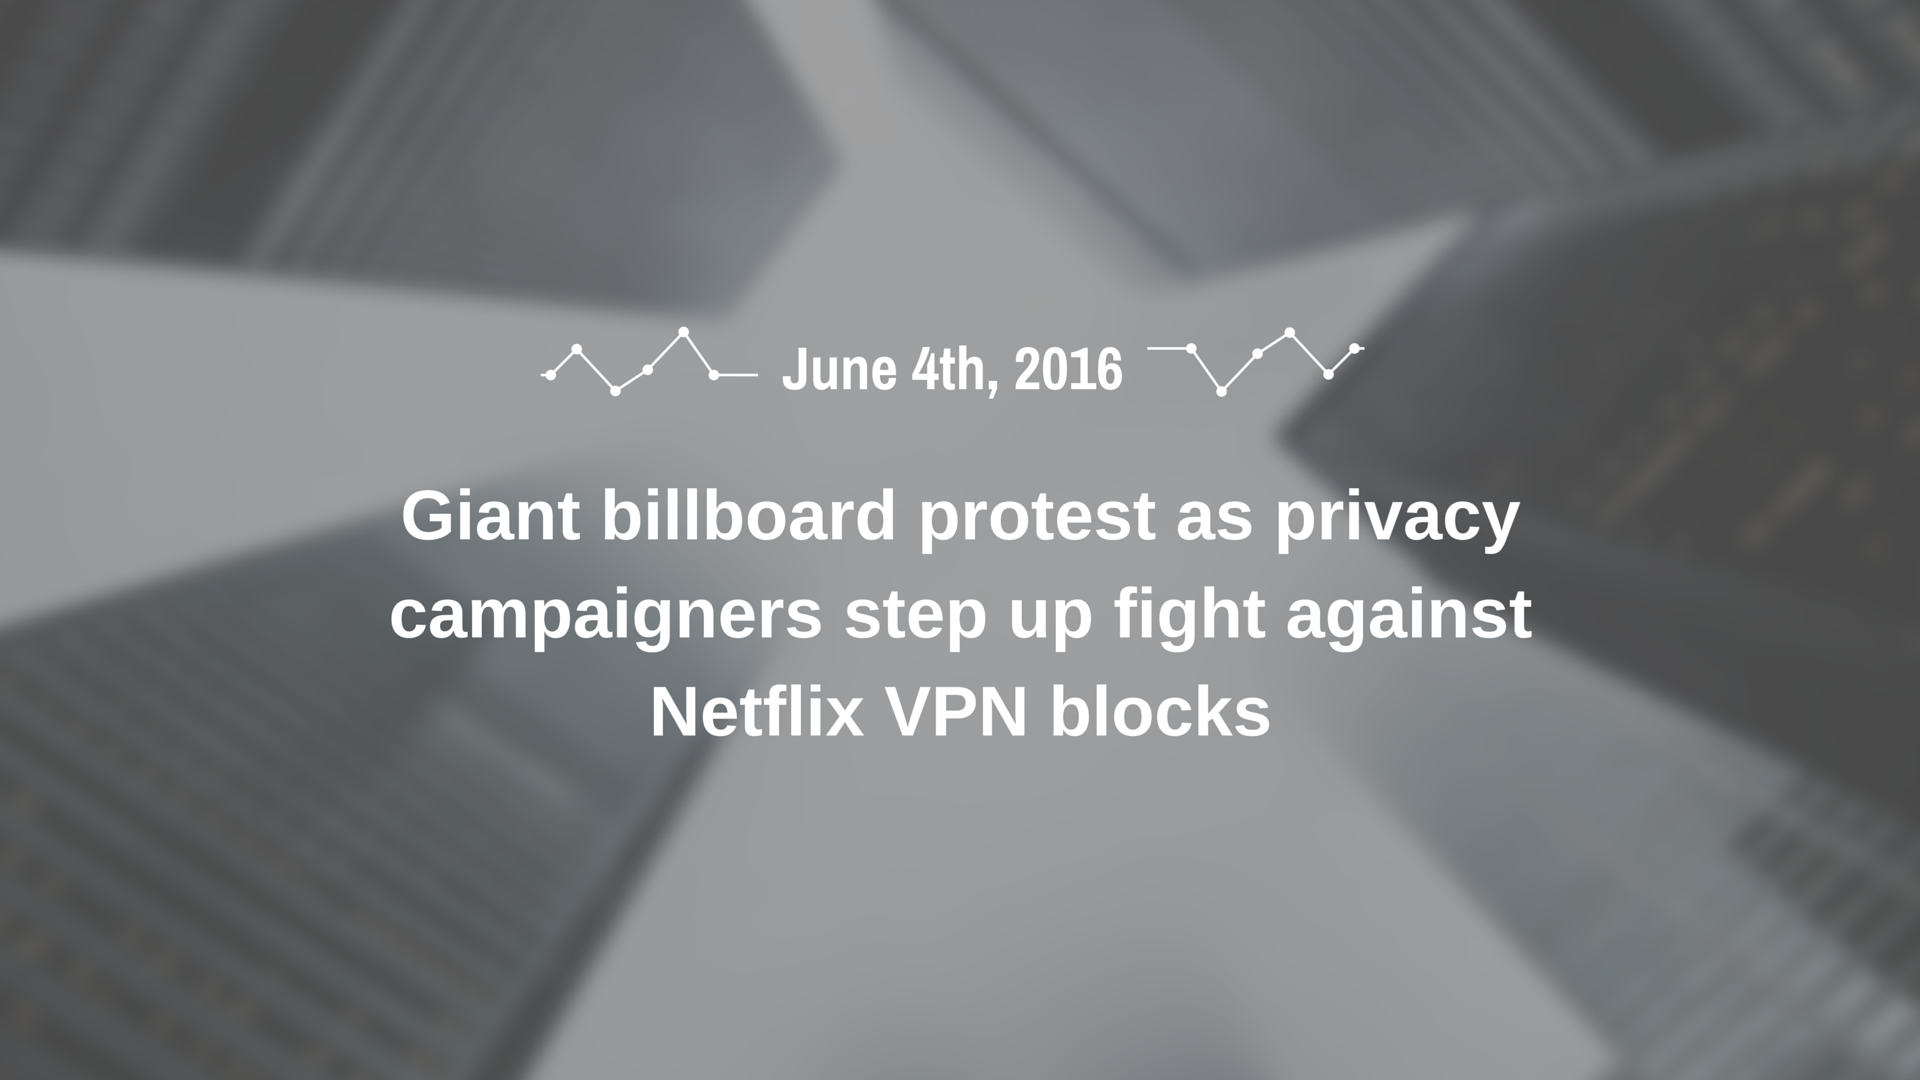 Giant billboard protest as privacy campaigners step up fight against Netflix VPN blocks